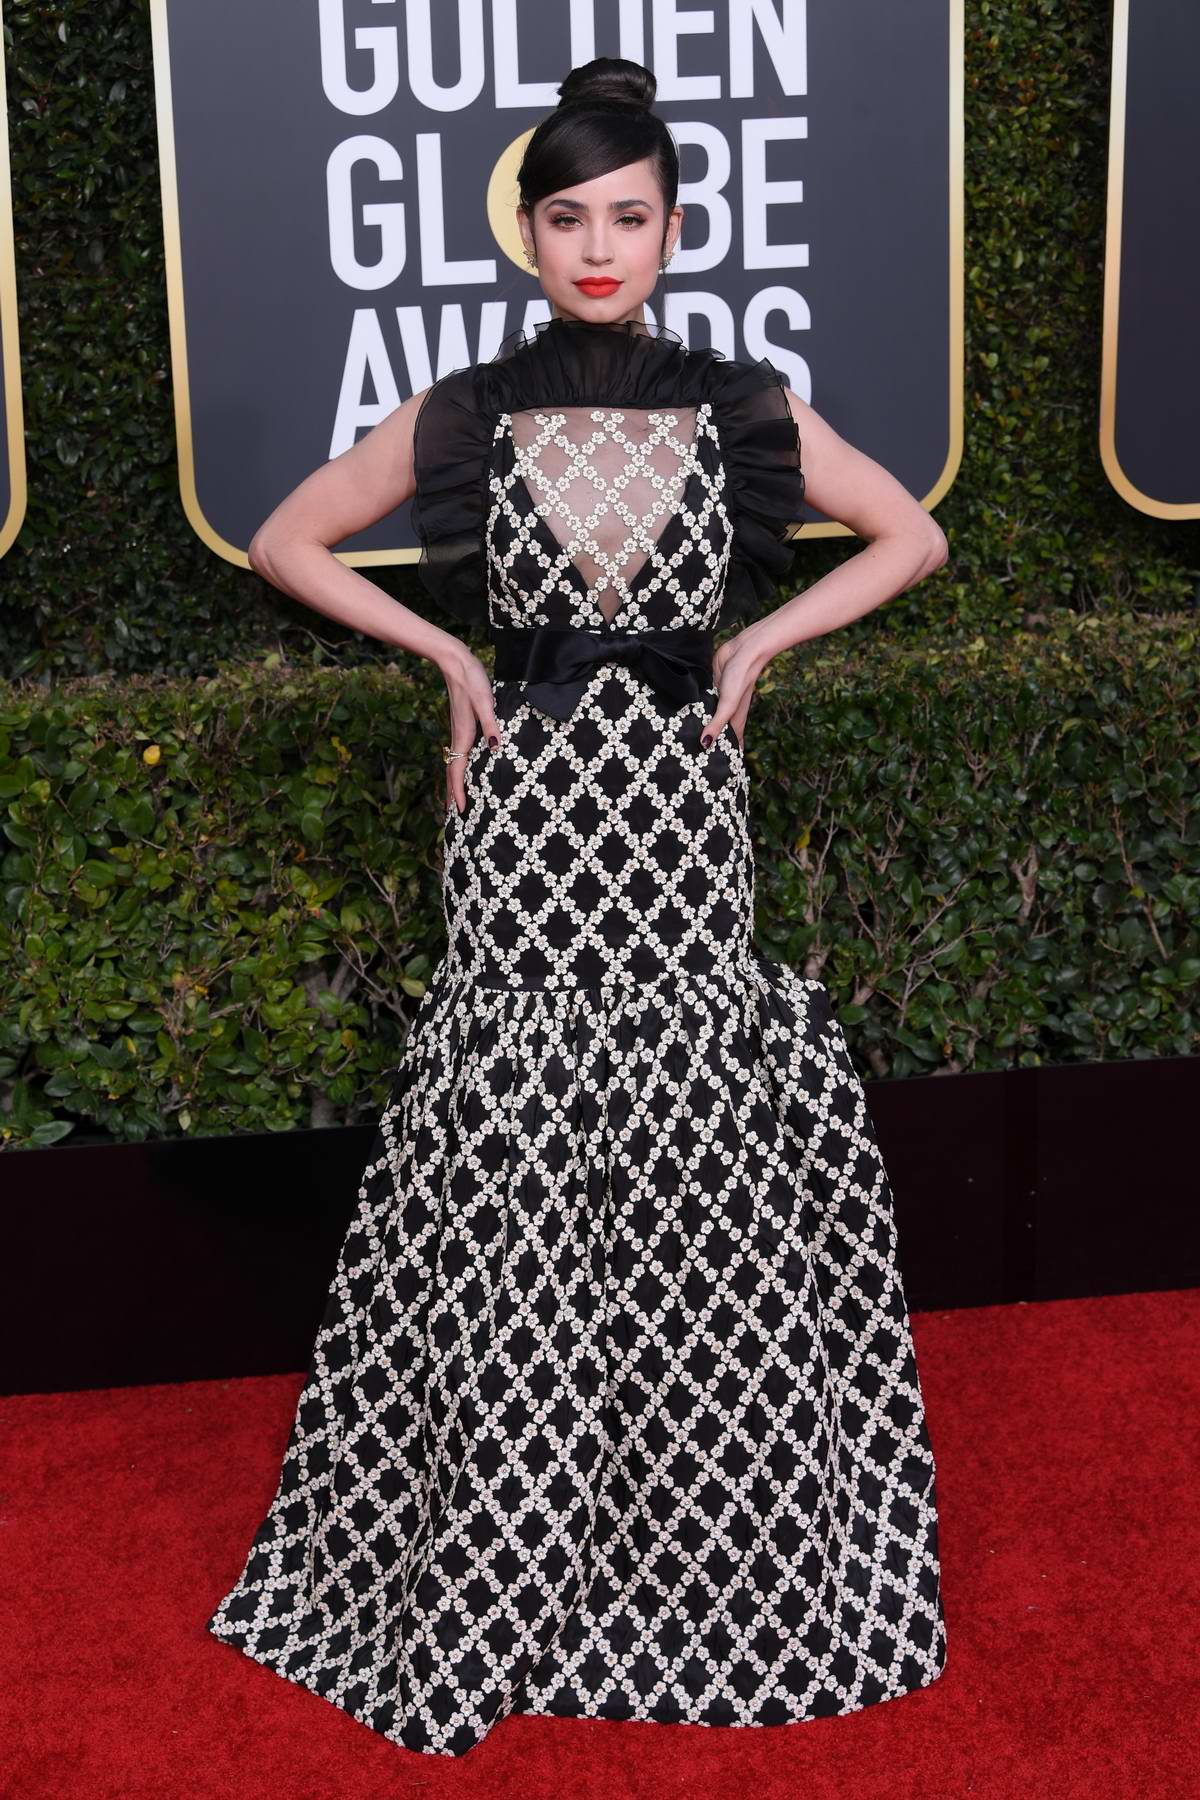 Sofia Carson attends the 76th Annual Golden Globe Awards held at The Beverly Hilton Hotel in Los Angeles, California